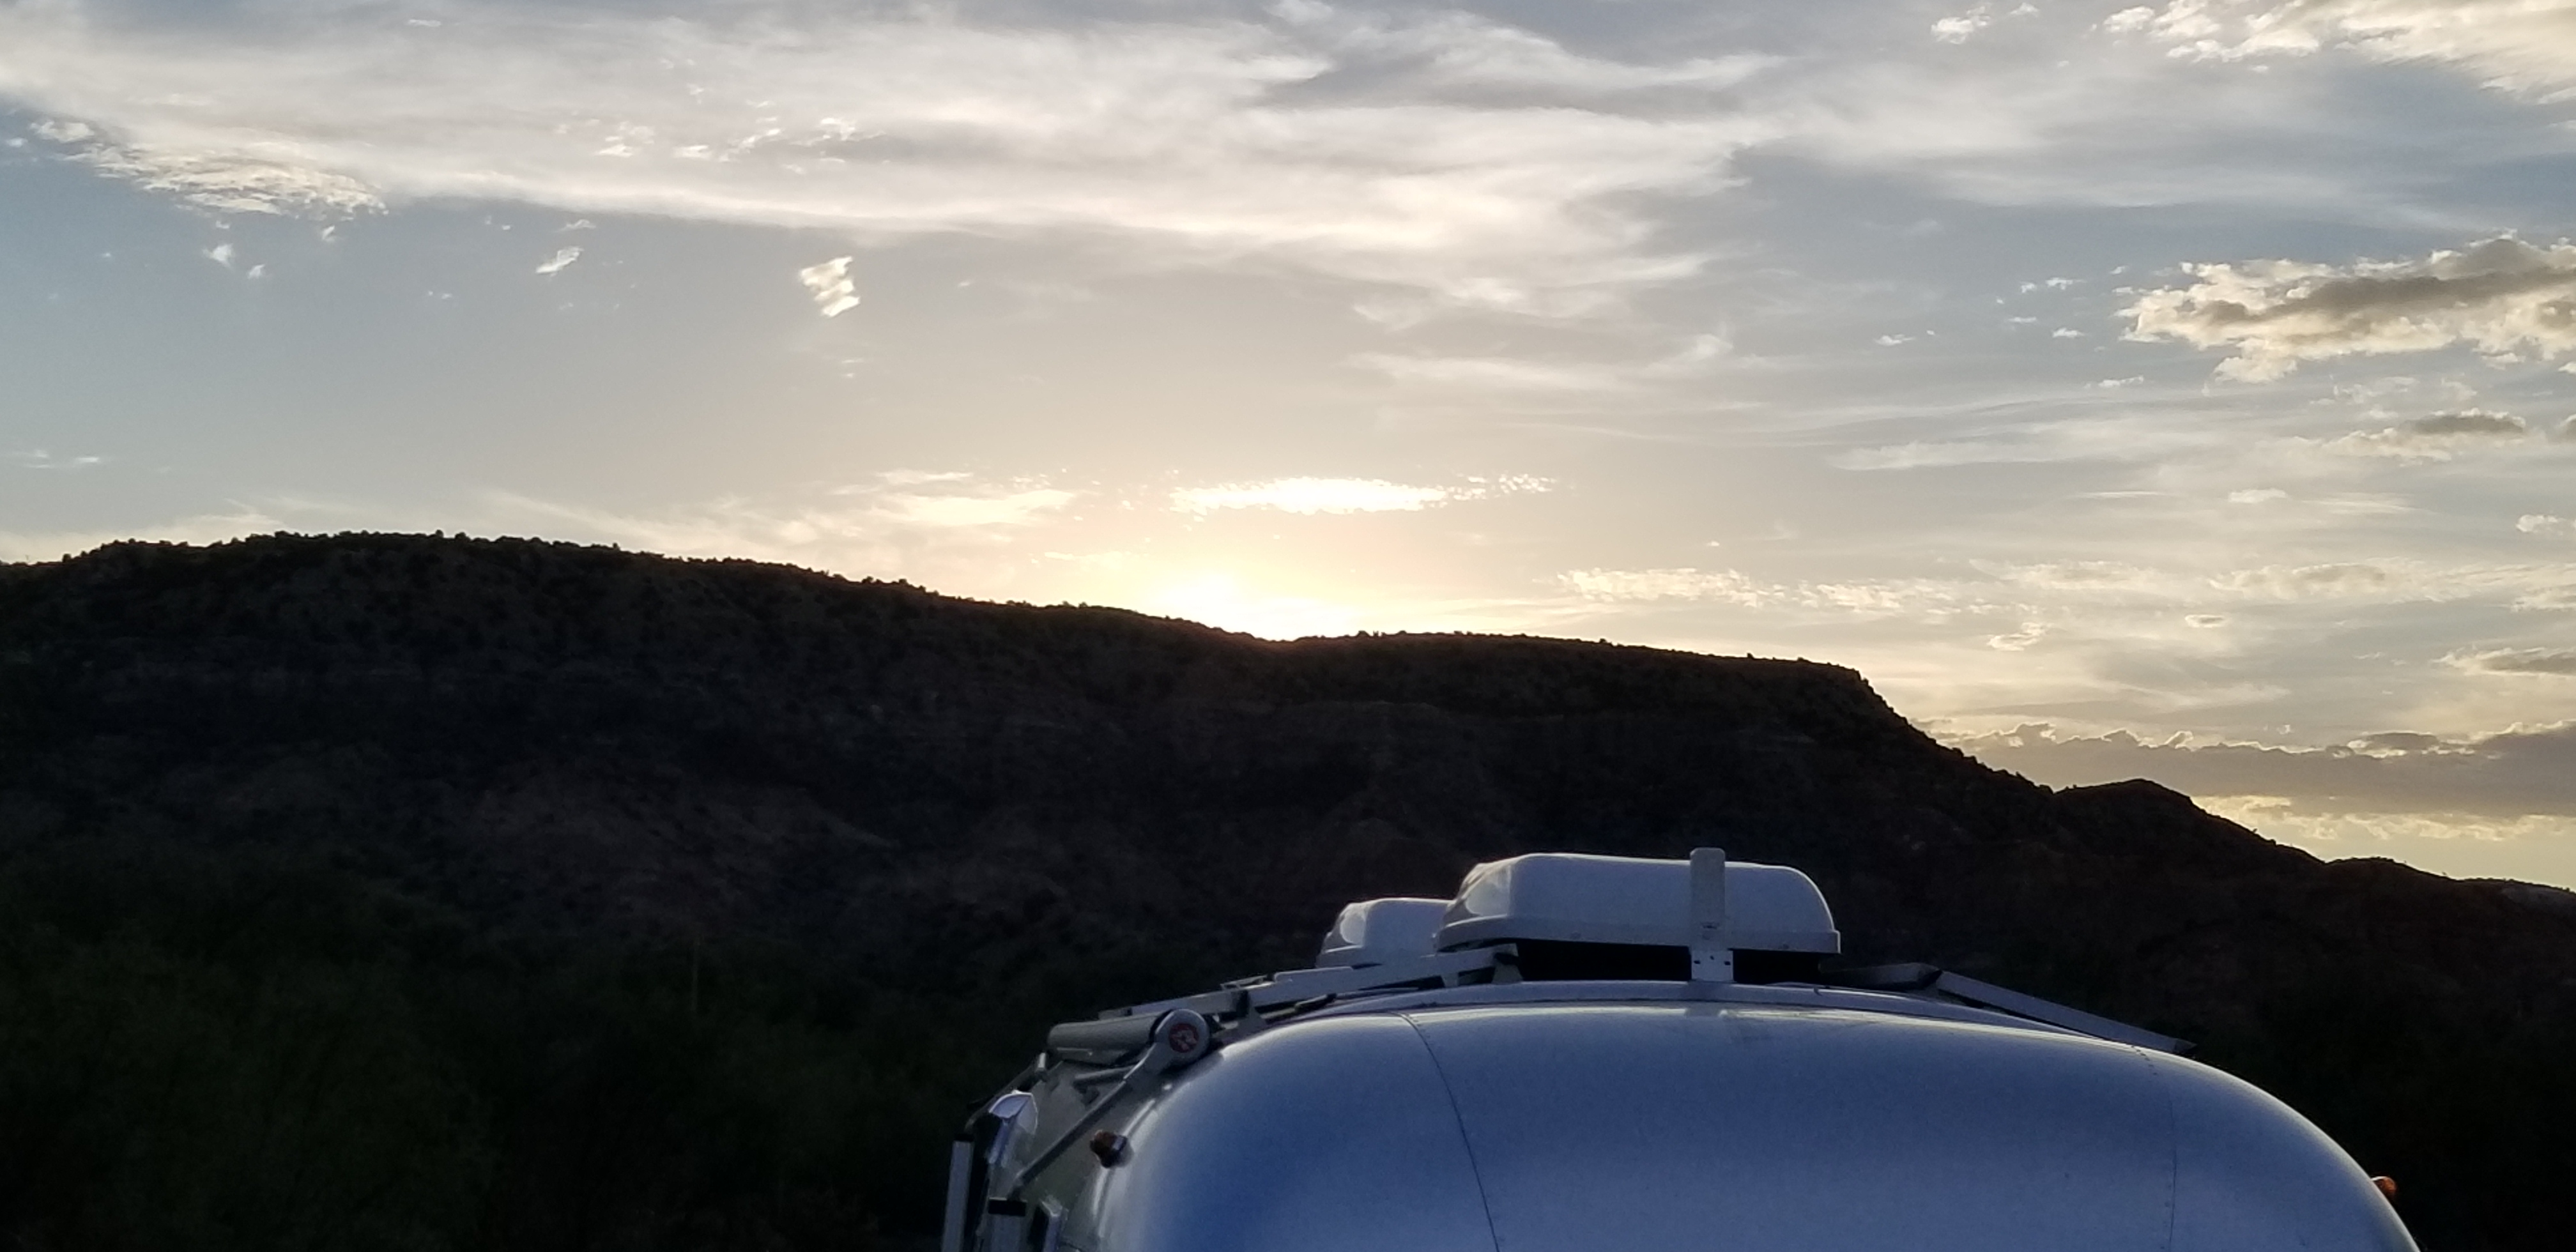 Cooled with 2 13500 btu dometic a/c units. Airstream Globetrotter 2018